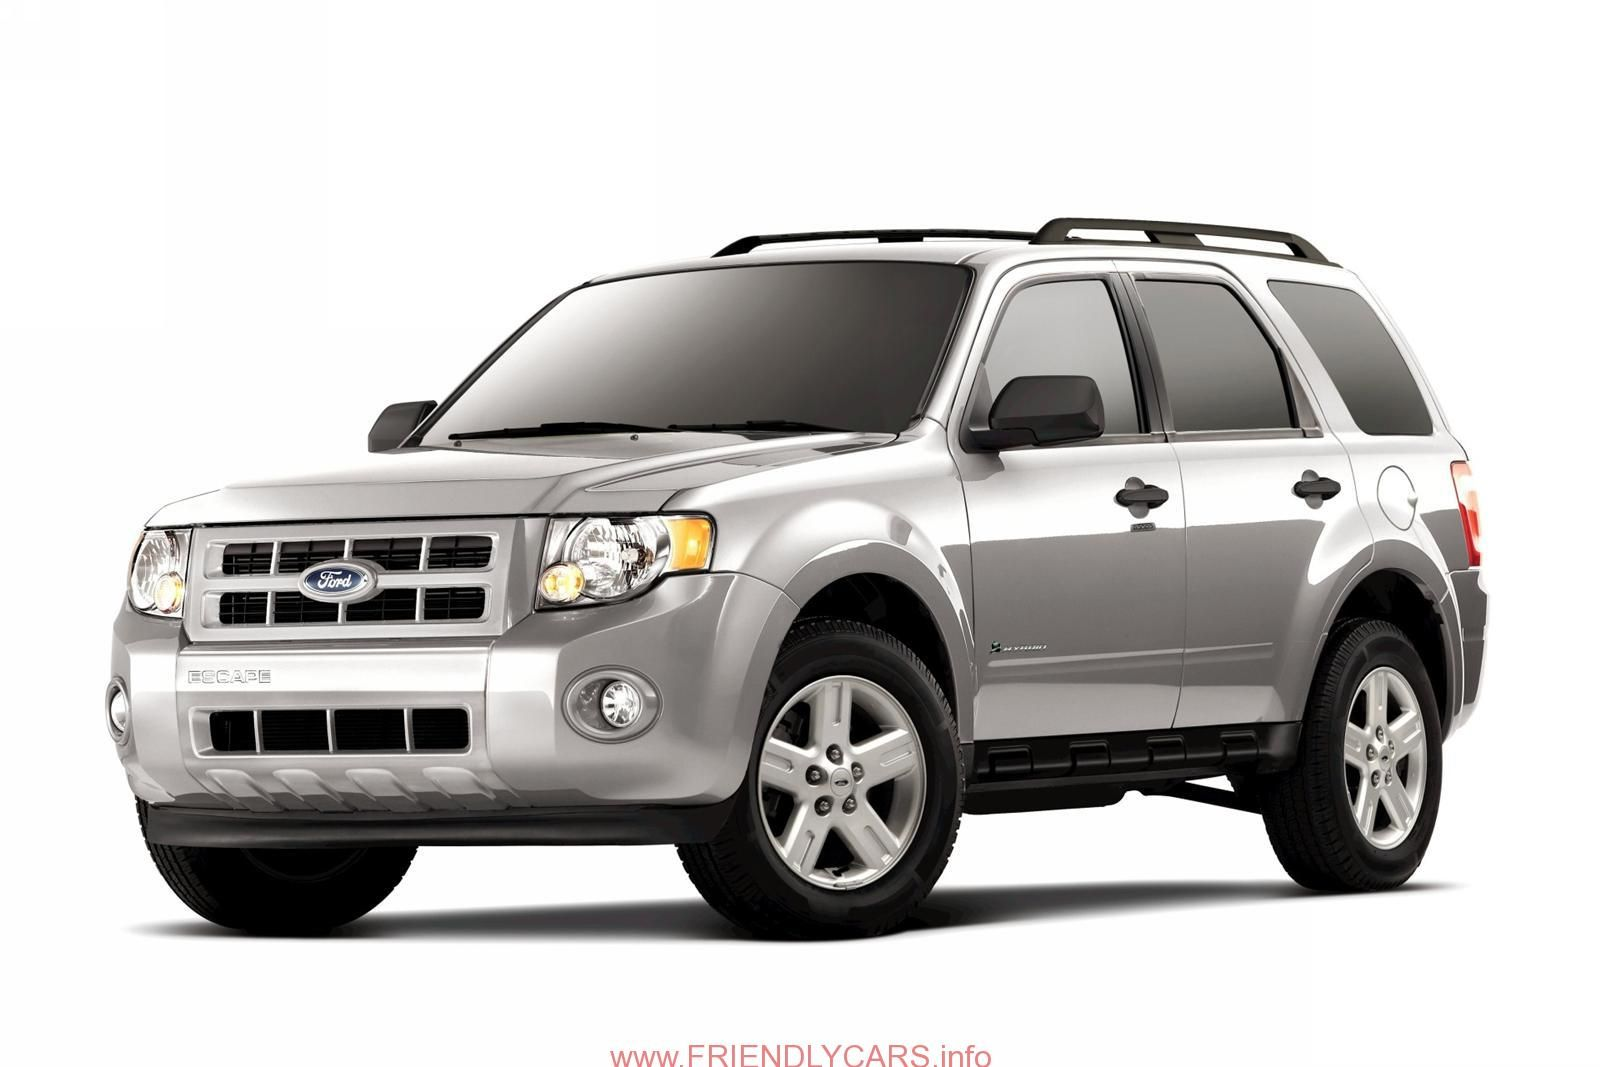 Nice Ford Escape 2012 Silver Car Images Hd 2010 Ford Escape